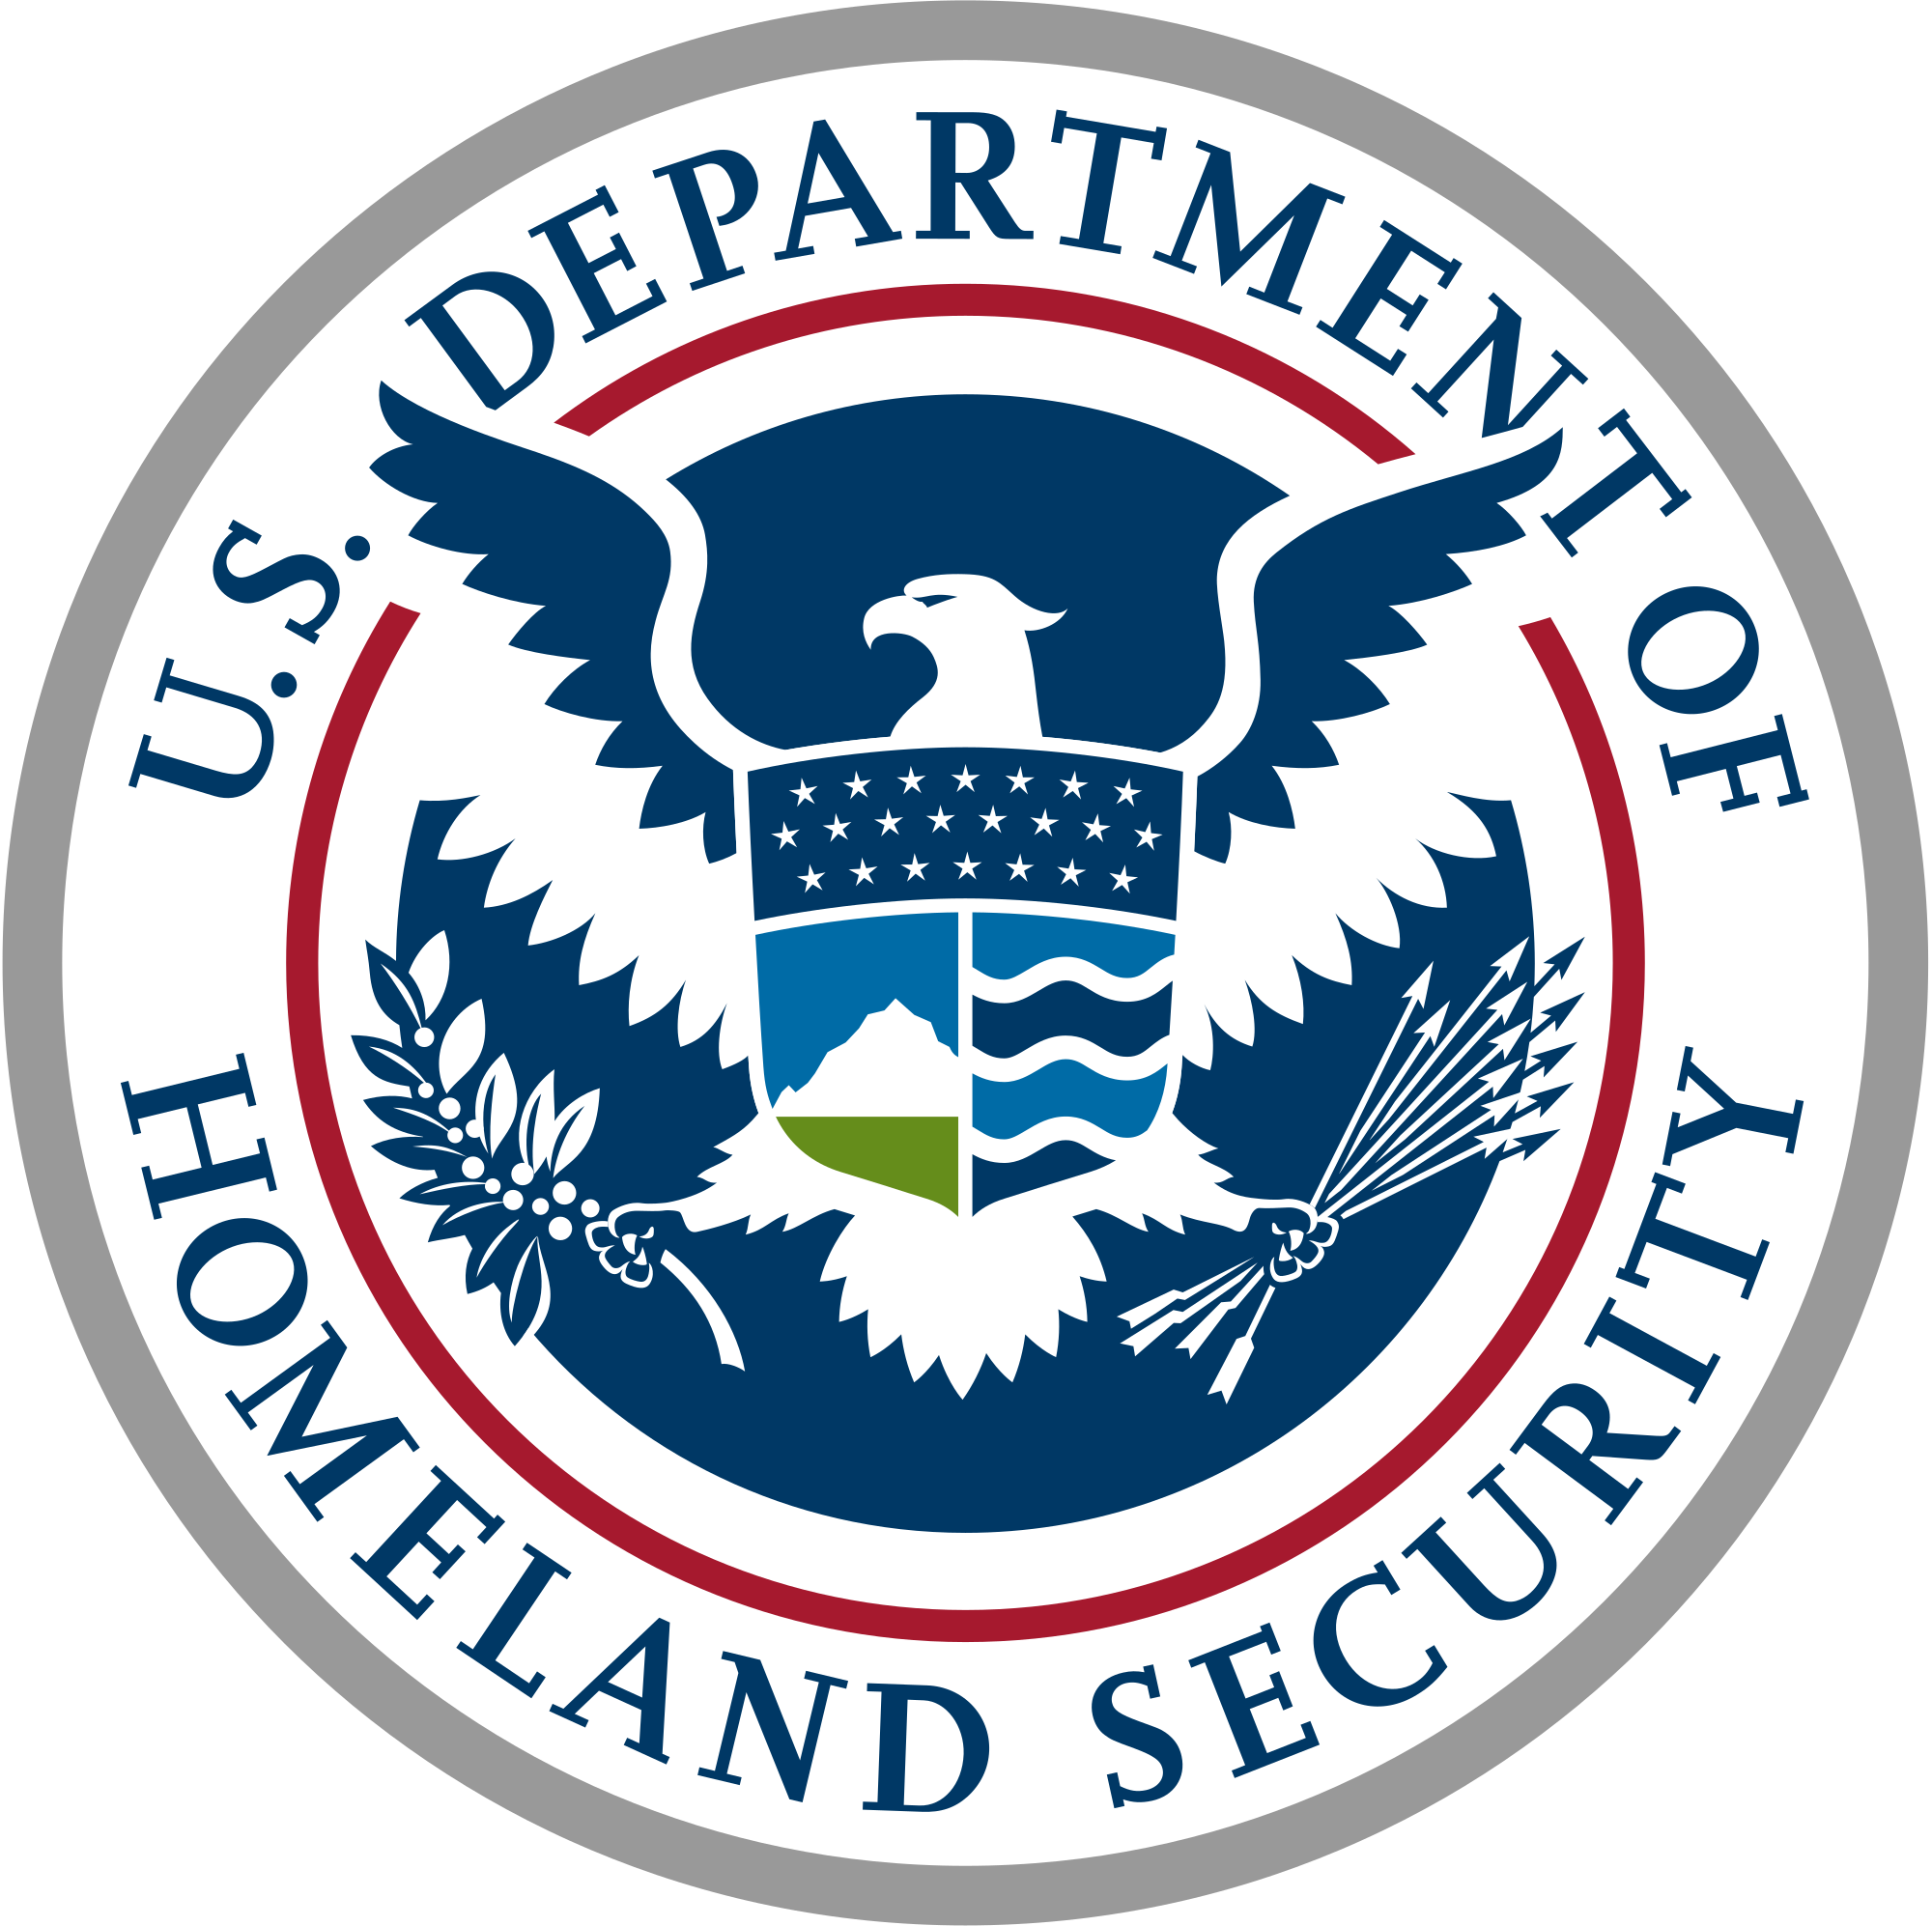 Homeland security symbol images symbol and sign ideas department of homeland security buycottarizona buycottarizona